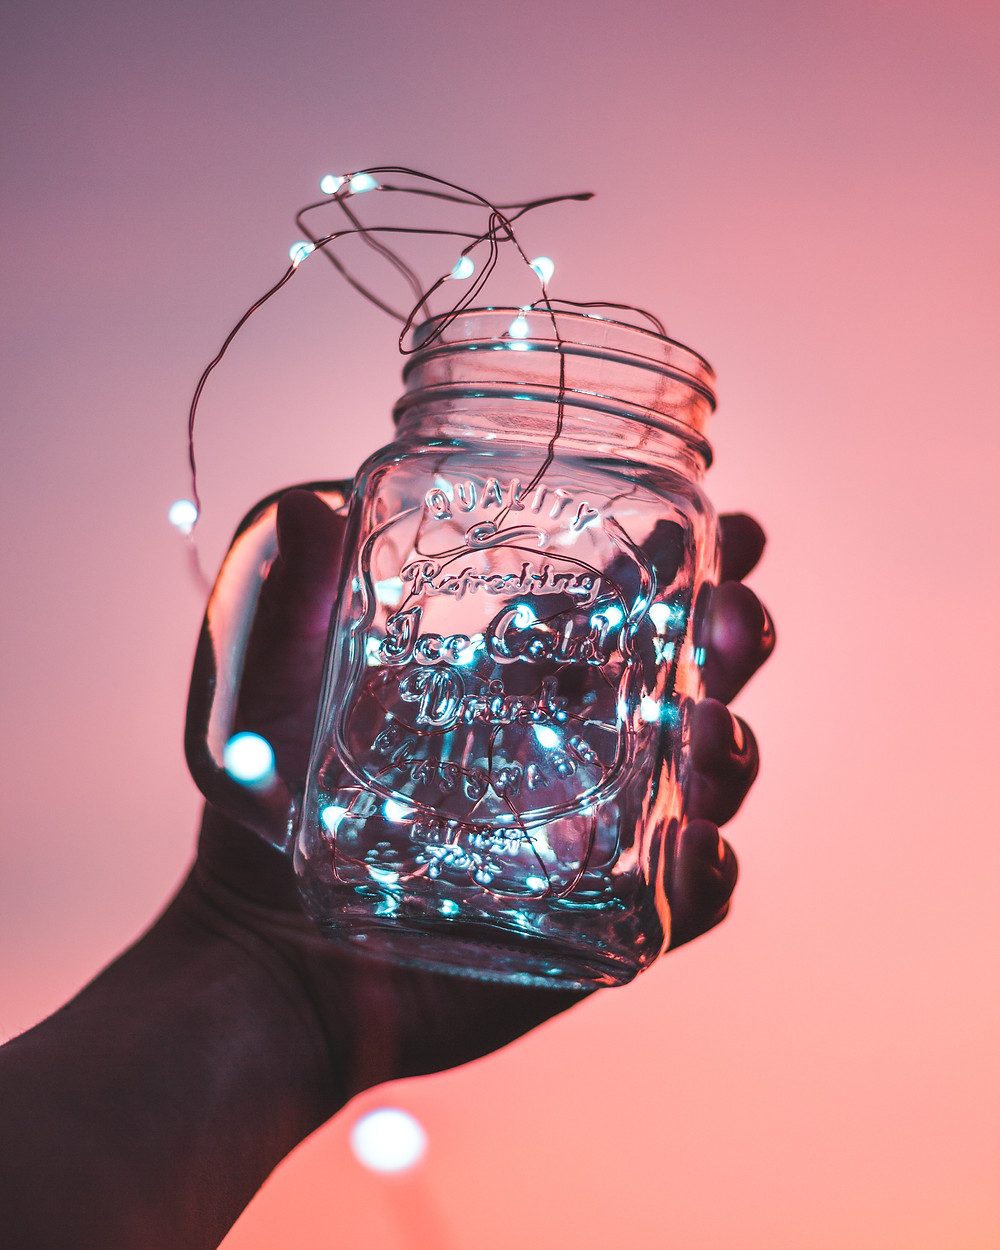 Cheap and effective, a dollar store string light and a jar, could create a dreamy look.